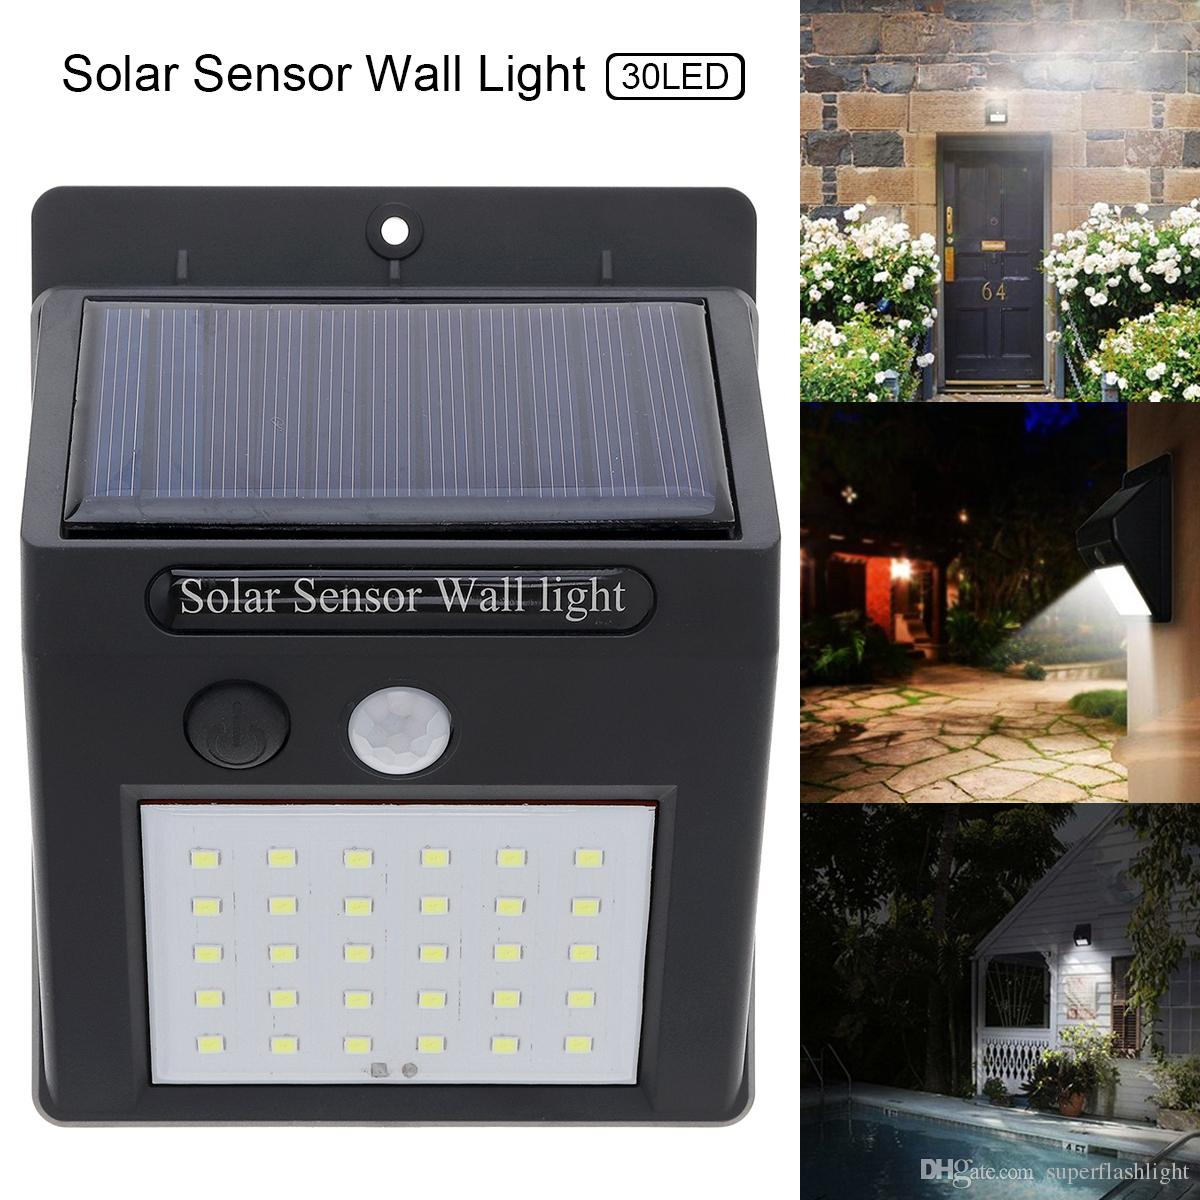 hight resolution of free wiring and easy installation solar intelligent light control automatic switch according to light intensity you need to press the switch first